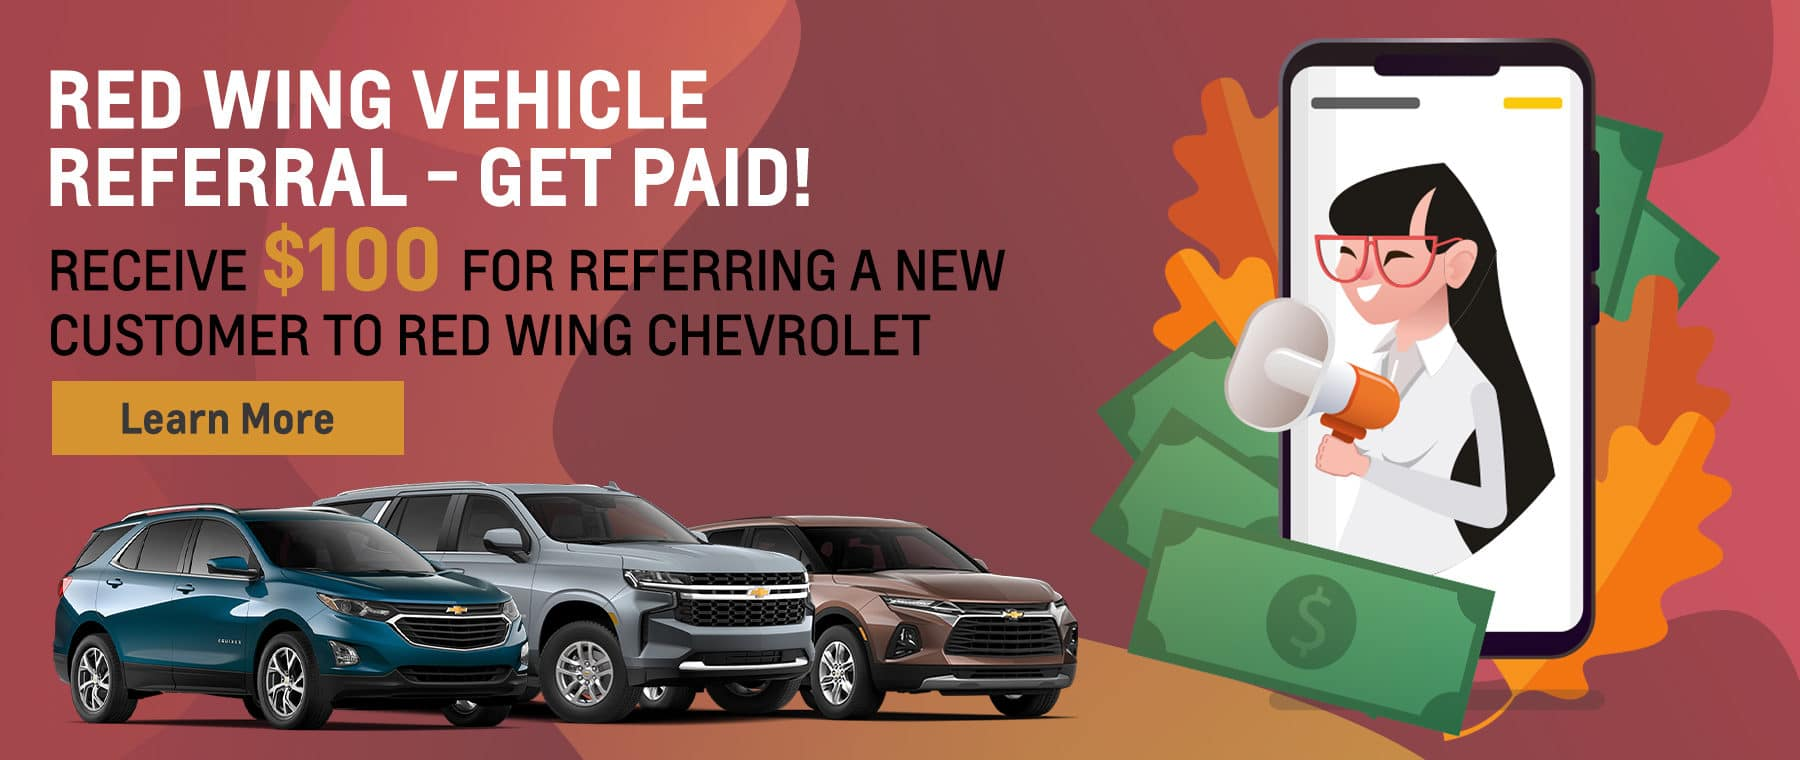 Red Wing Vehicle Referral - Get Paid!